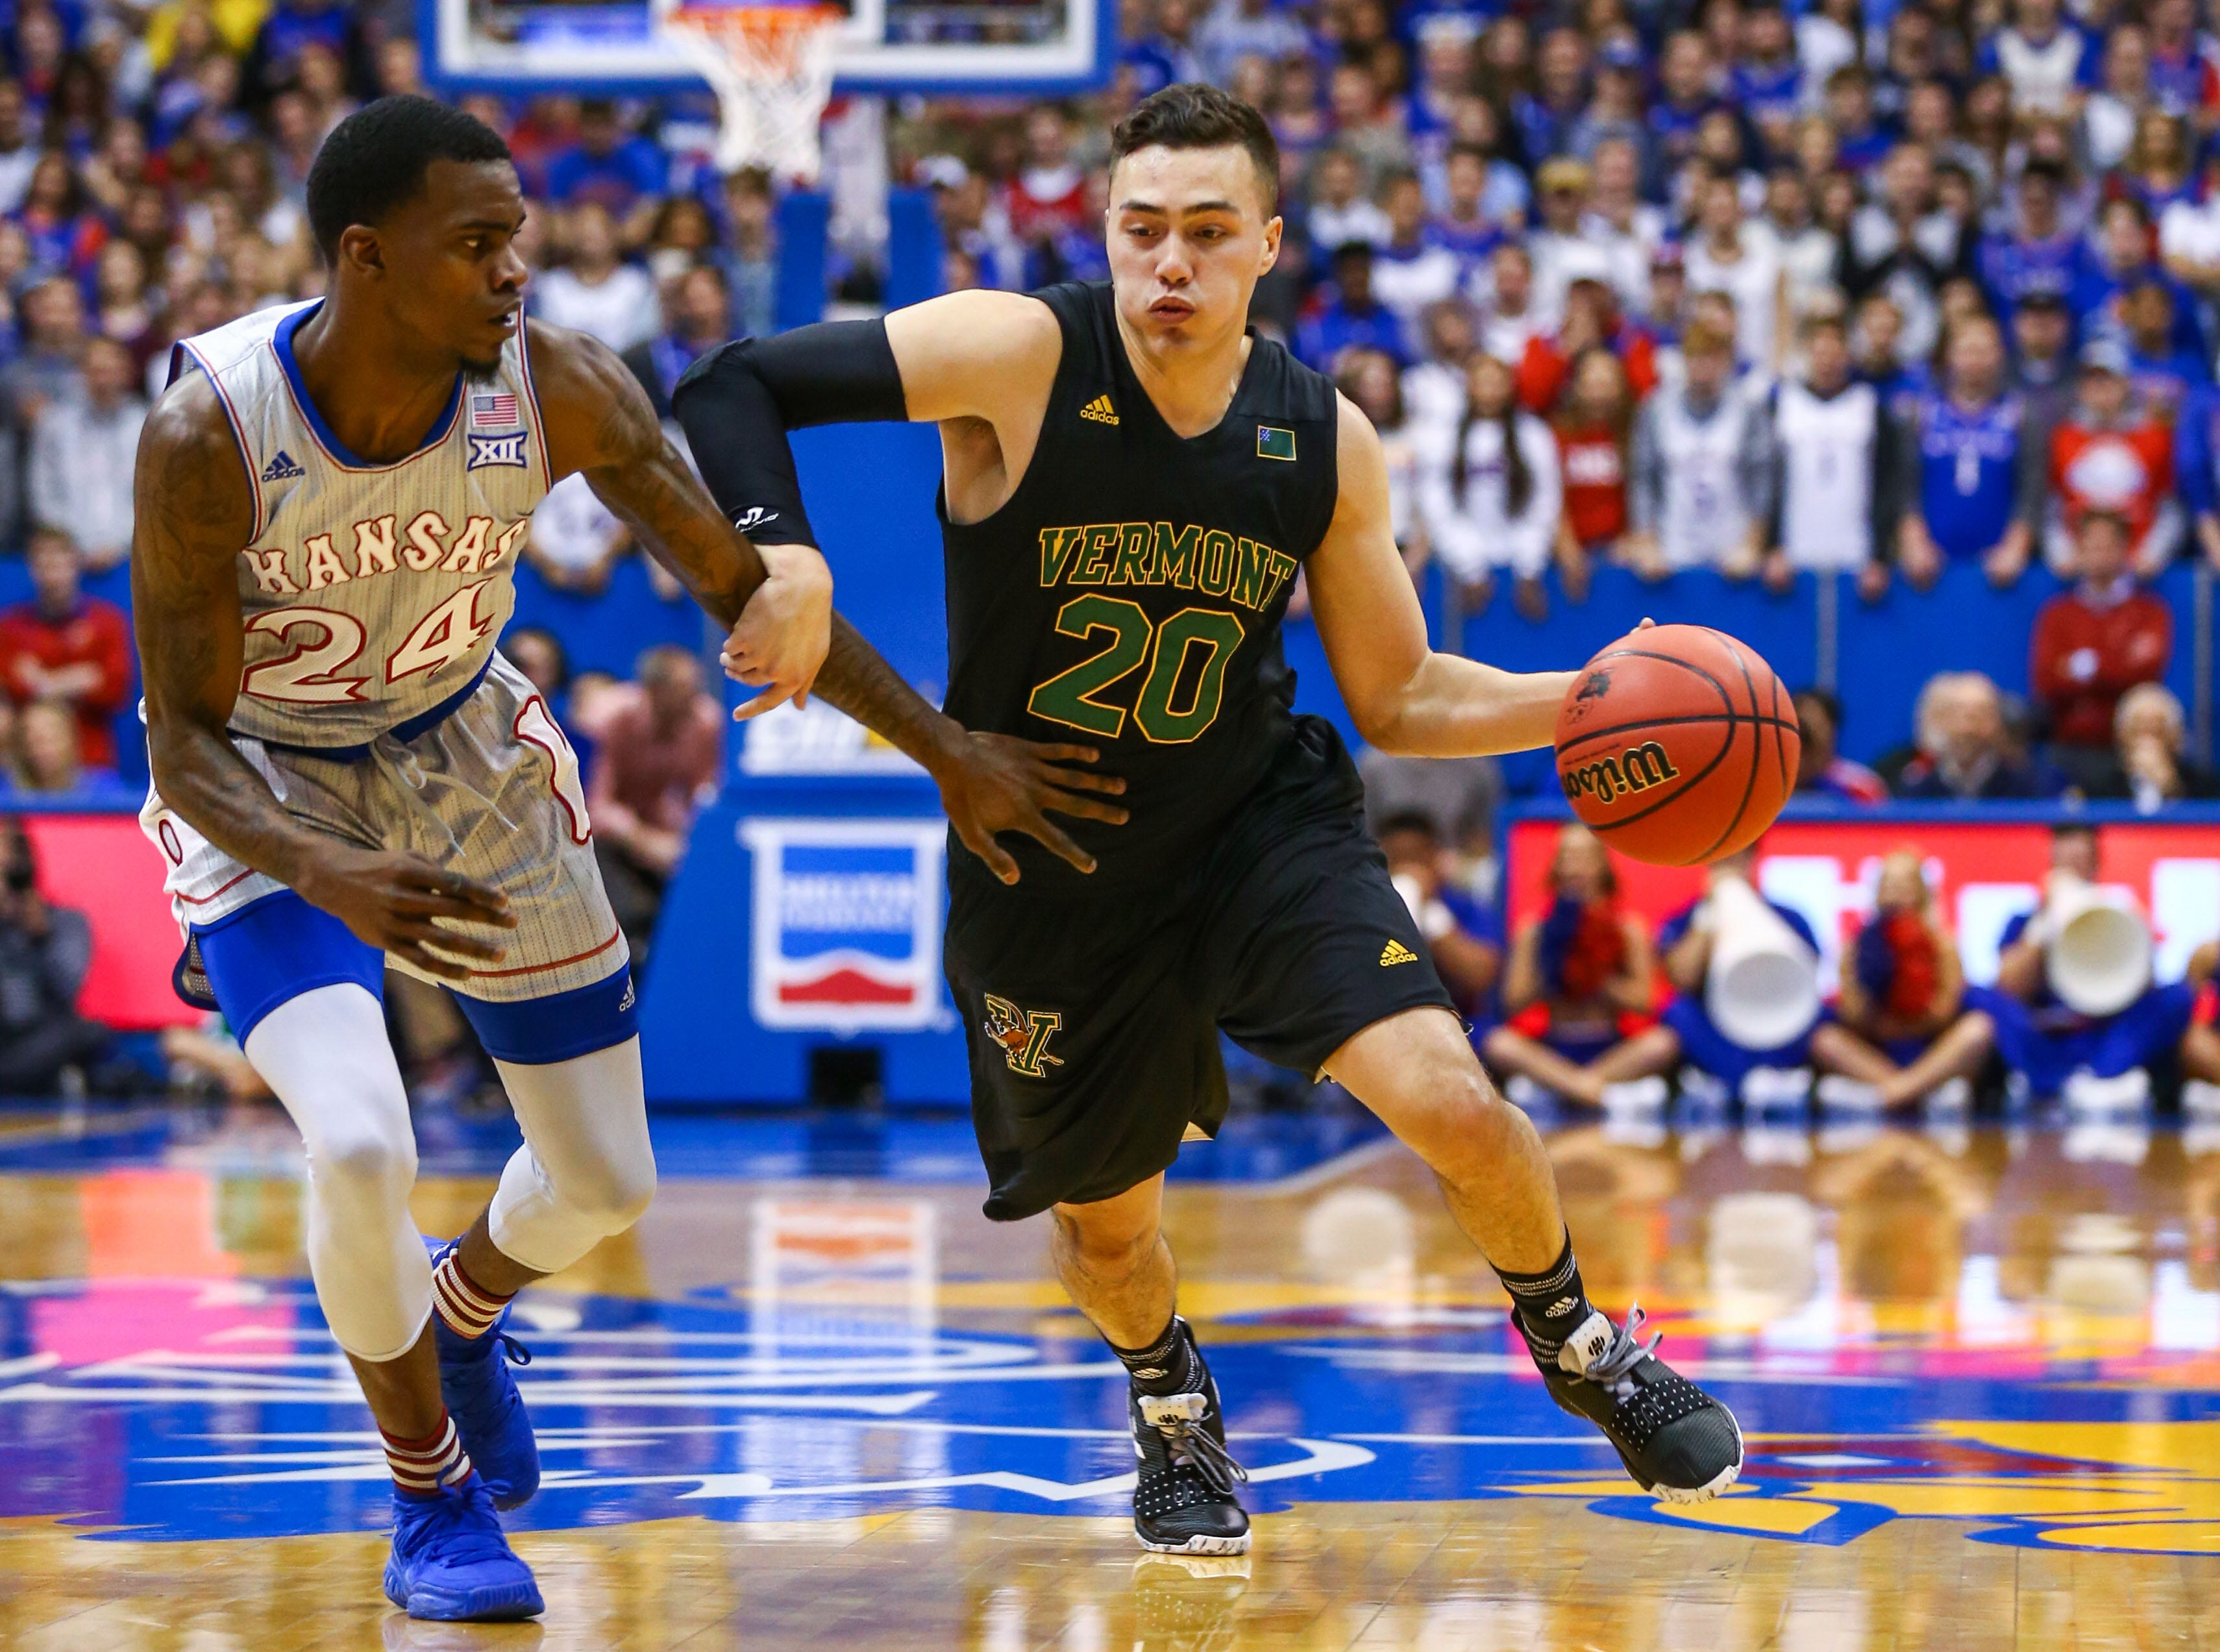 Vermont Catamounts guard Ernie Duncan (20) dribbles the ball against Kansas Jayhawks guard Lagerald Vick (24) in the first half at Allen Fieldhouse.